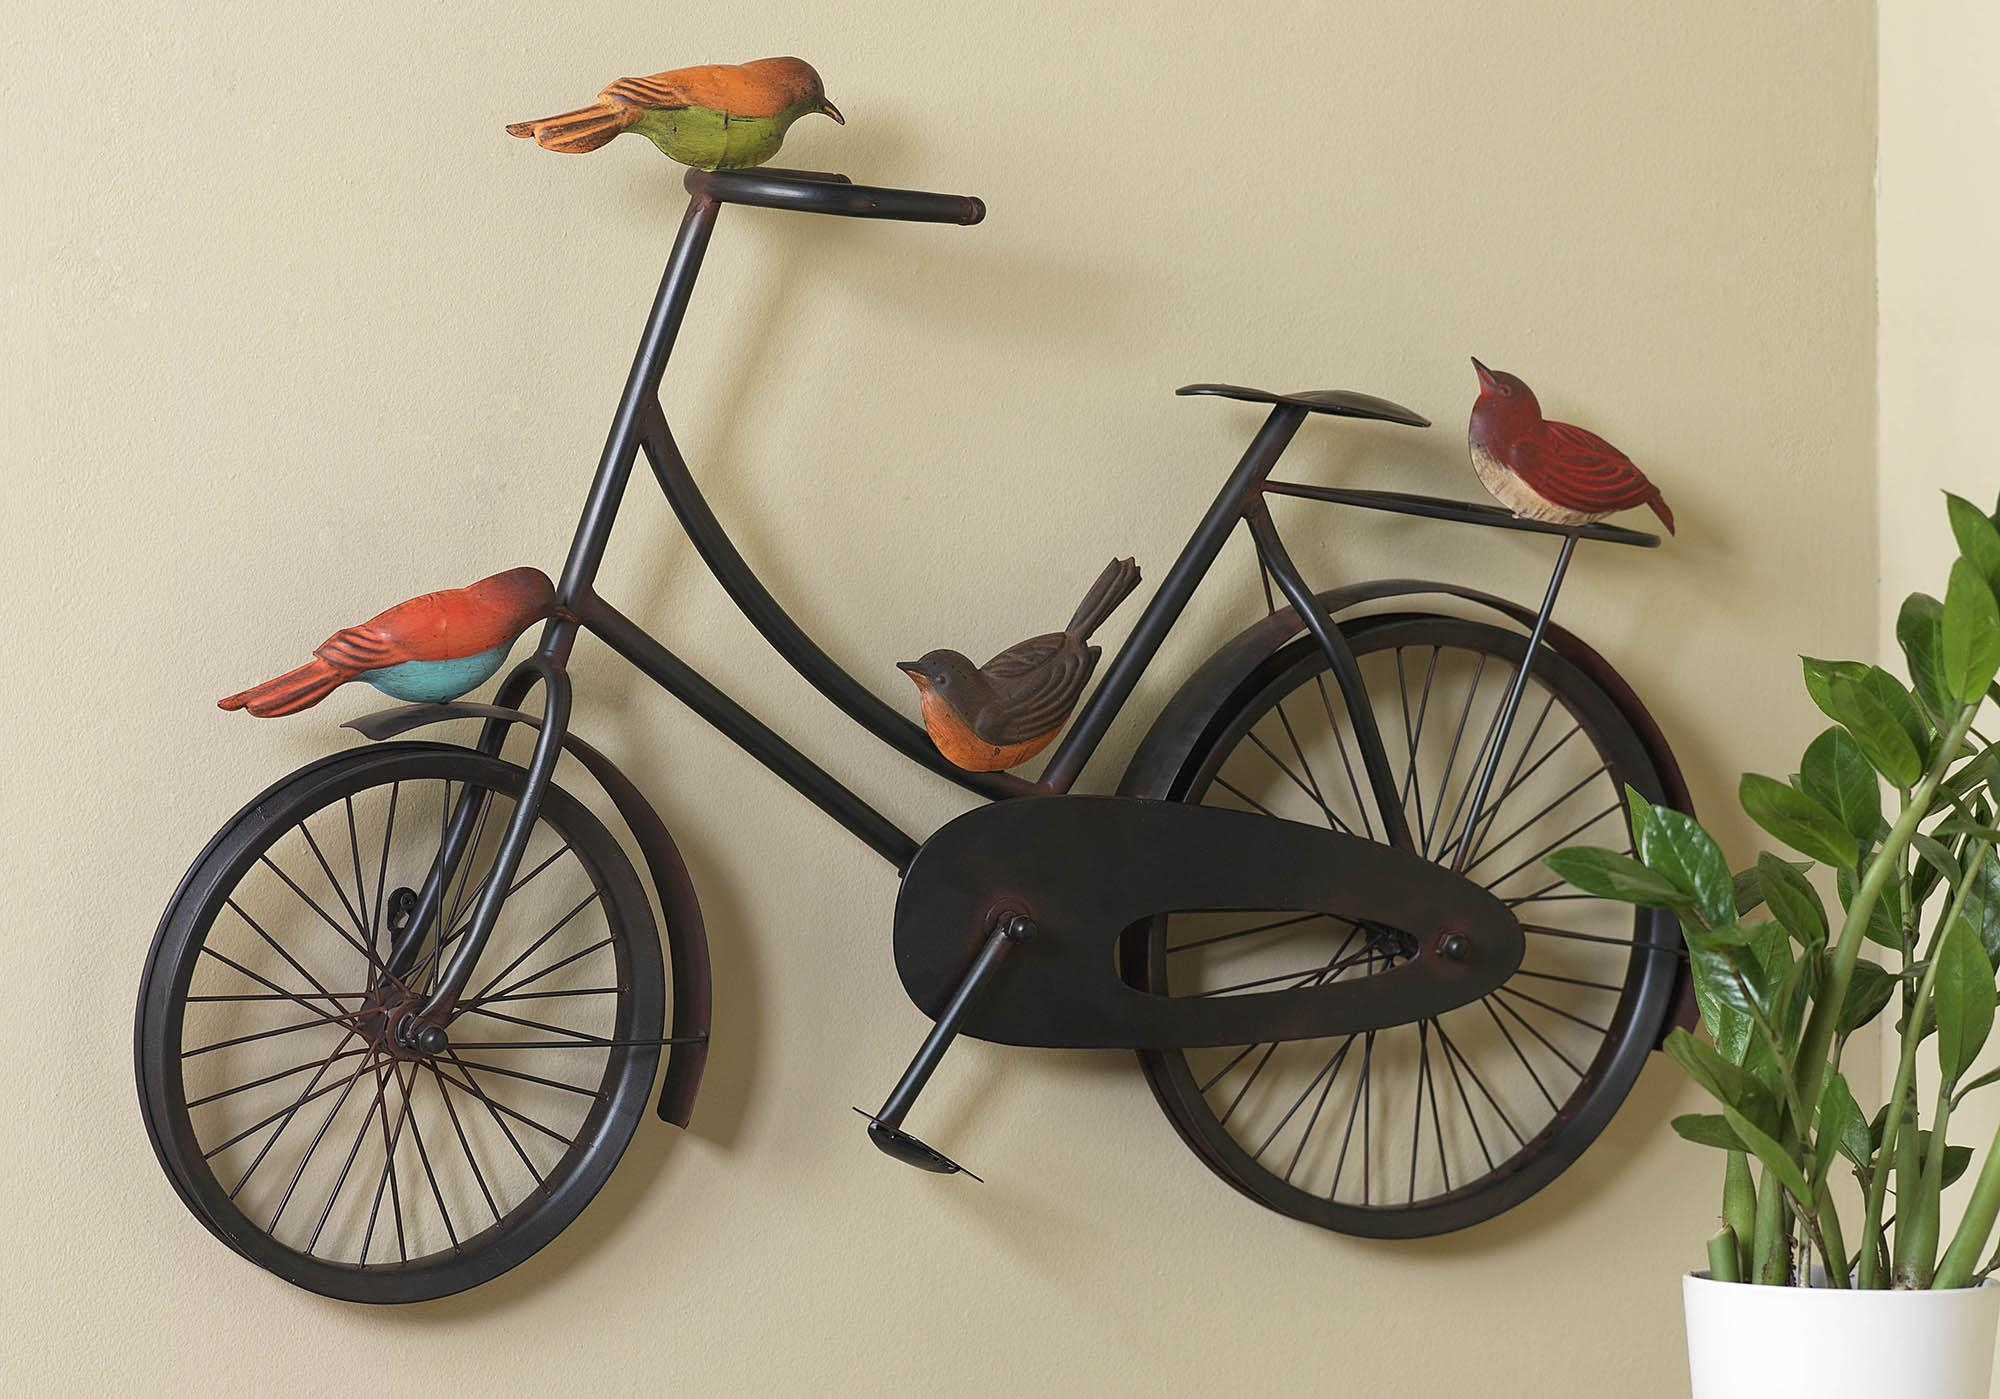 Bare Wall Remedies | Porter's Craft & Frame For Bicycle Wall Art Decor (View 14 of 20)